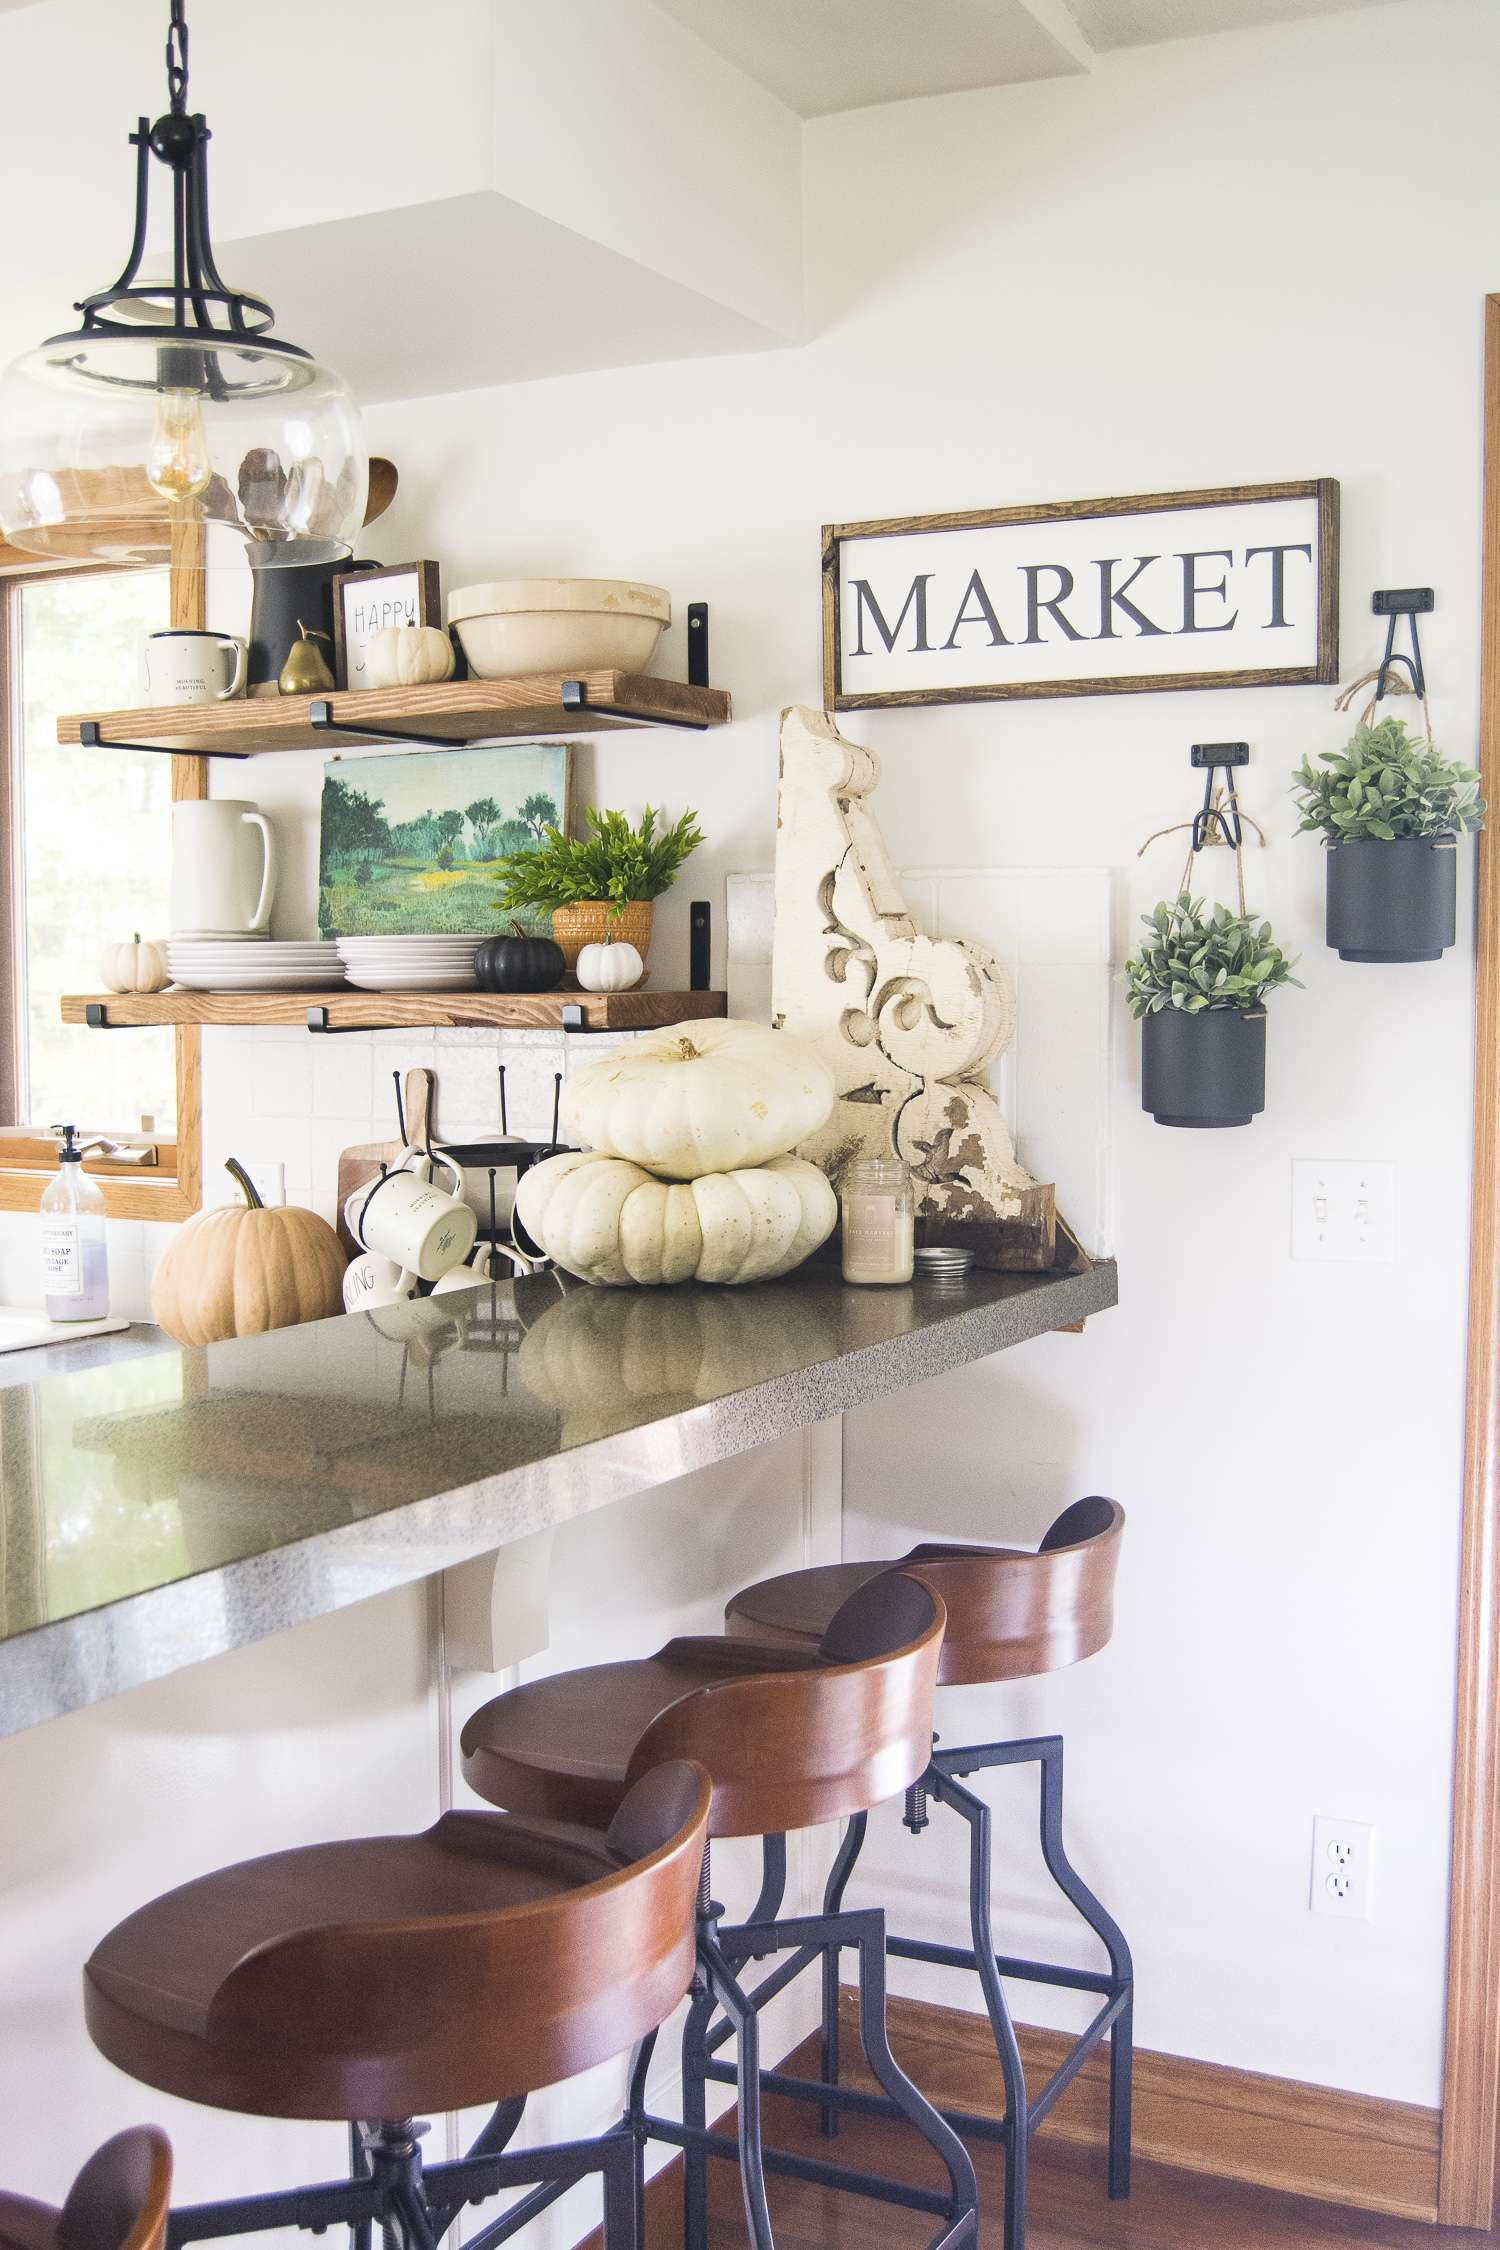 Dining in the Fall | Read more to see simple and affordable fall decor ideas for the kitchen and dining room! #falldecorideas #kitchendecor